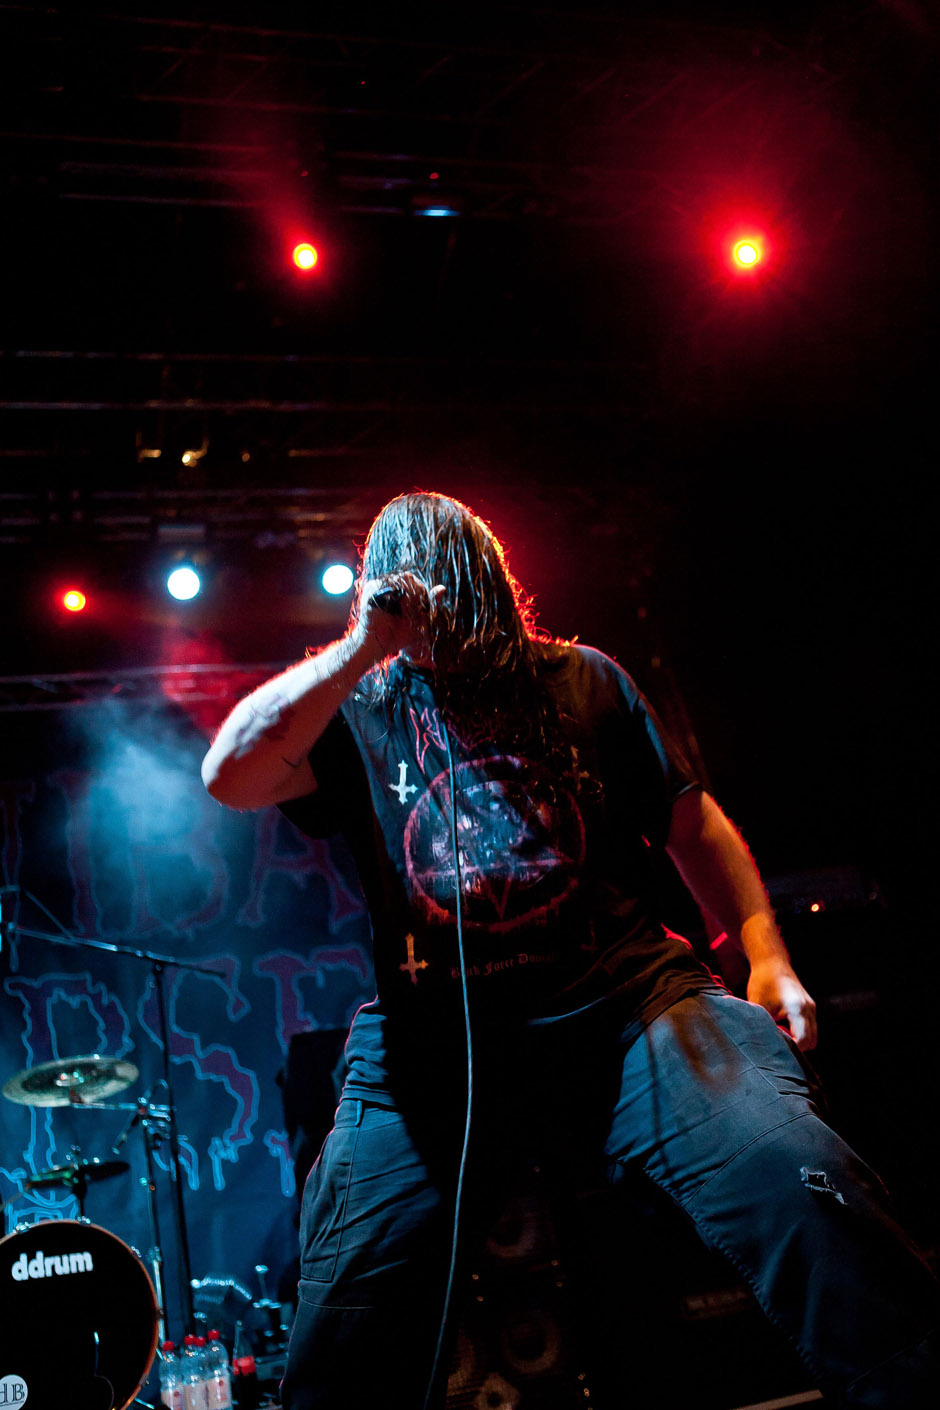 Cannibal Corpse live, Extremefest 2012 in Hünxe